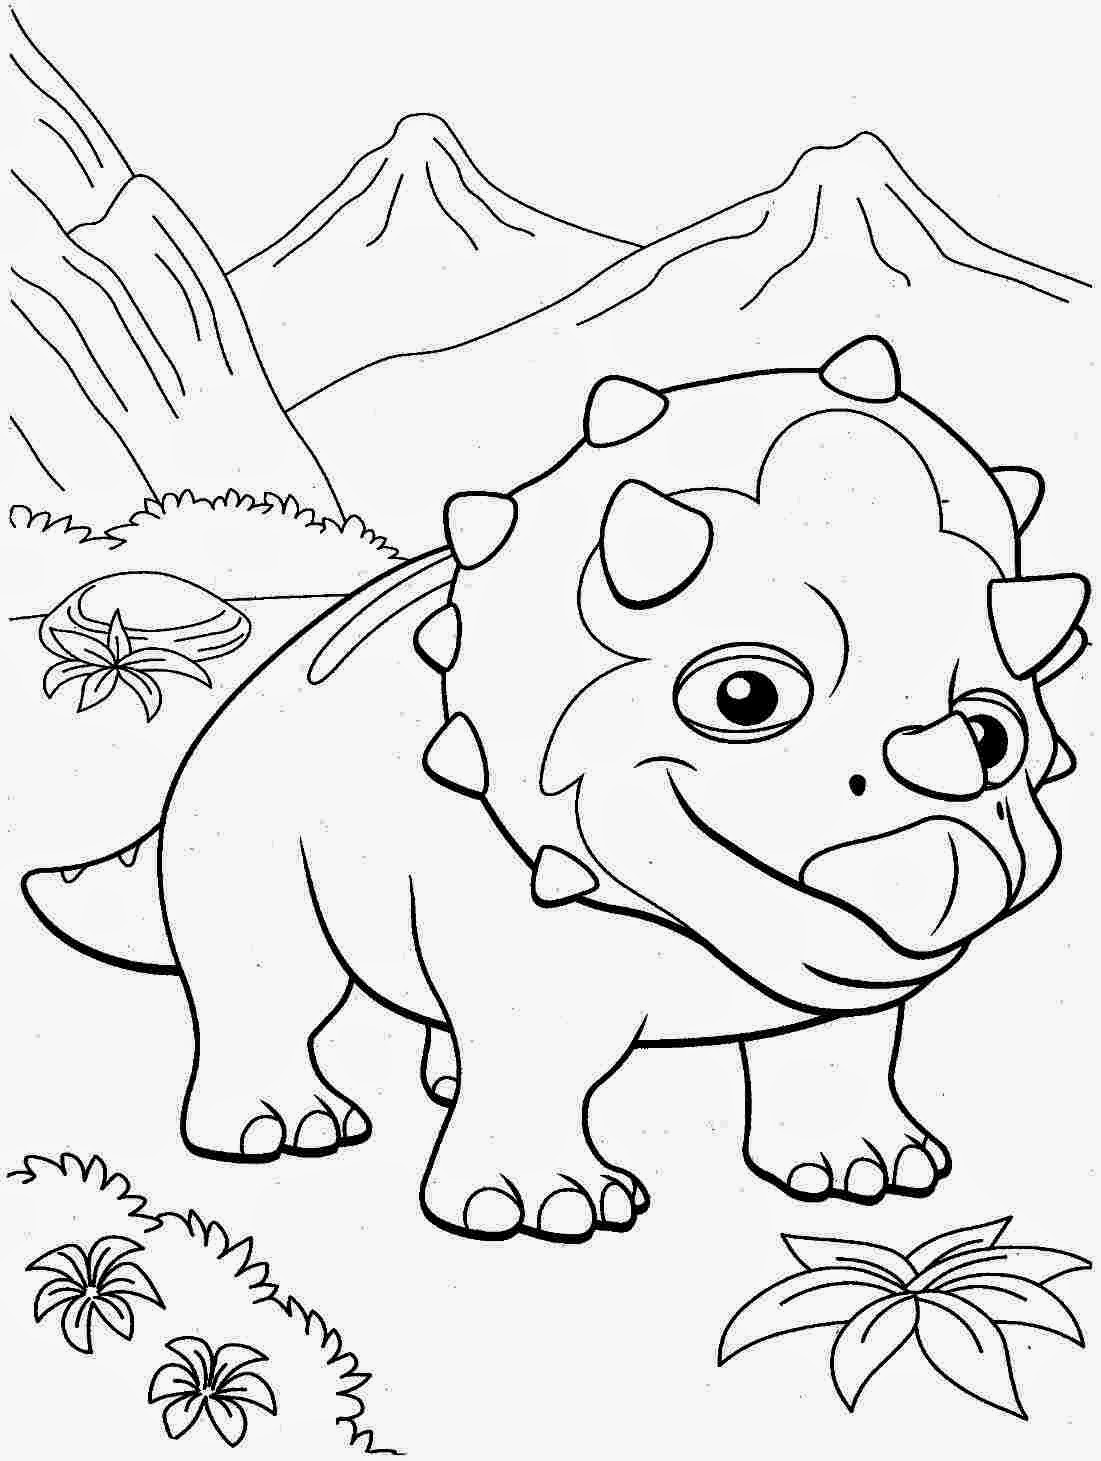 dinosaurs coloring pages printable free printable dinosaur coloring pages for kids pages printable coloring dinosaurs